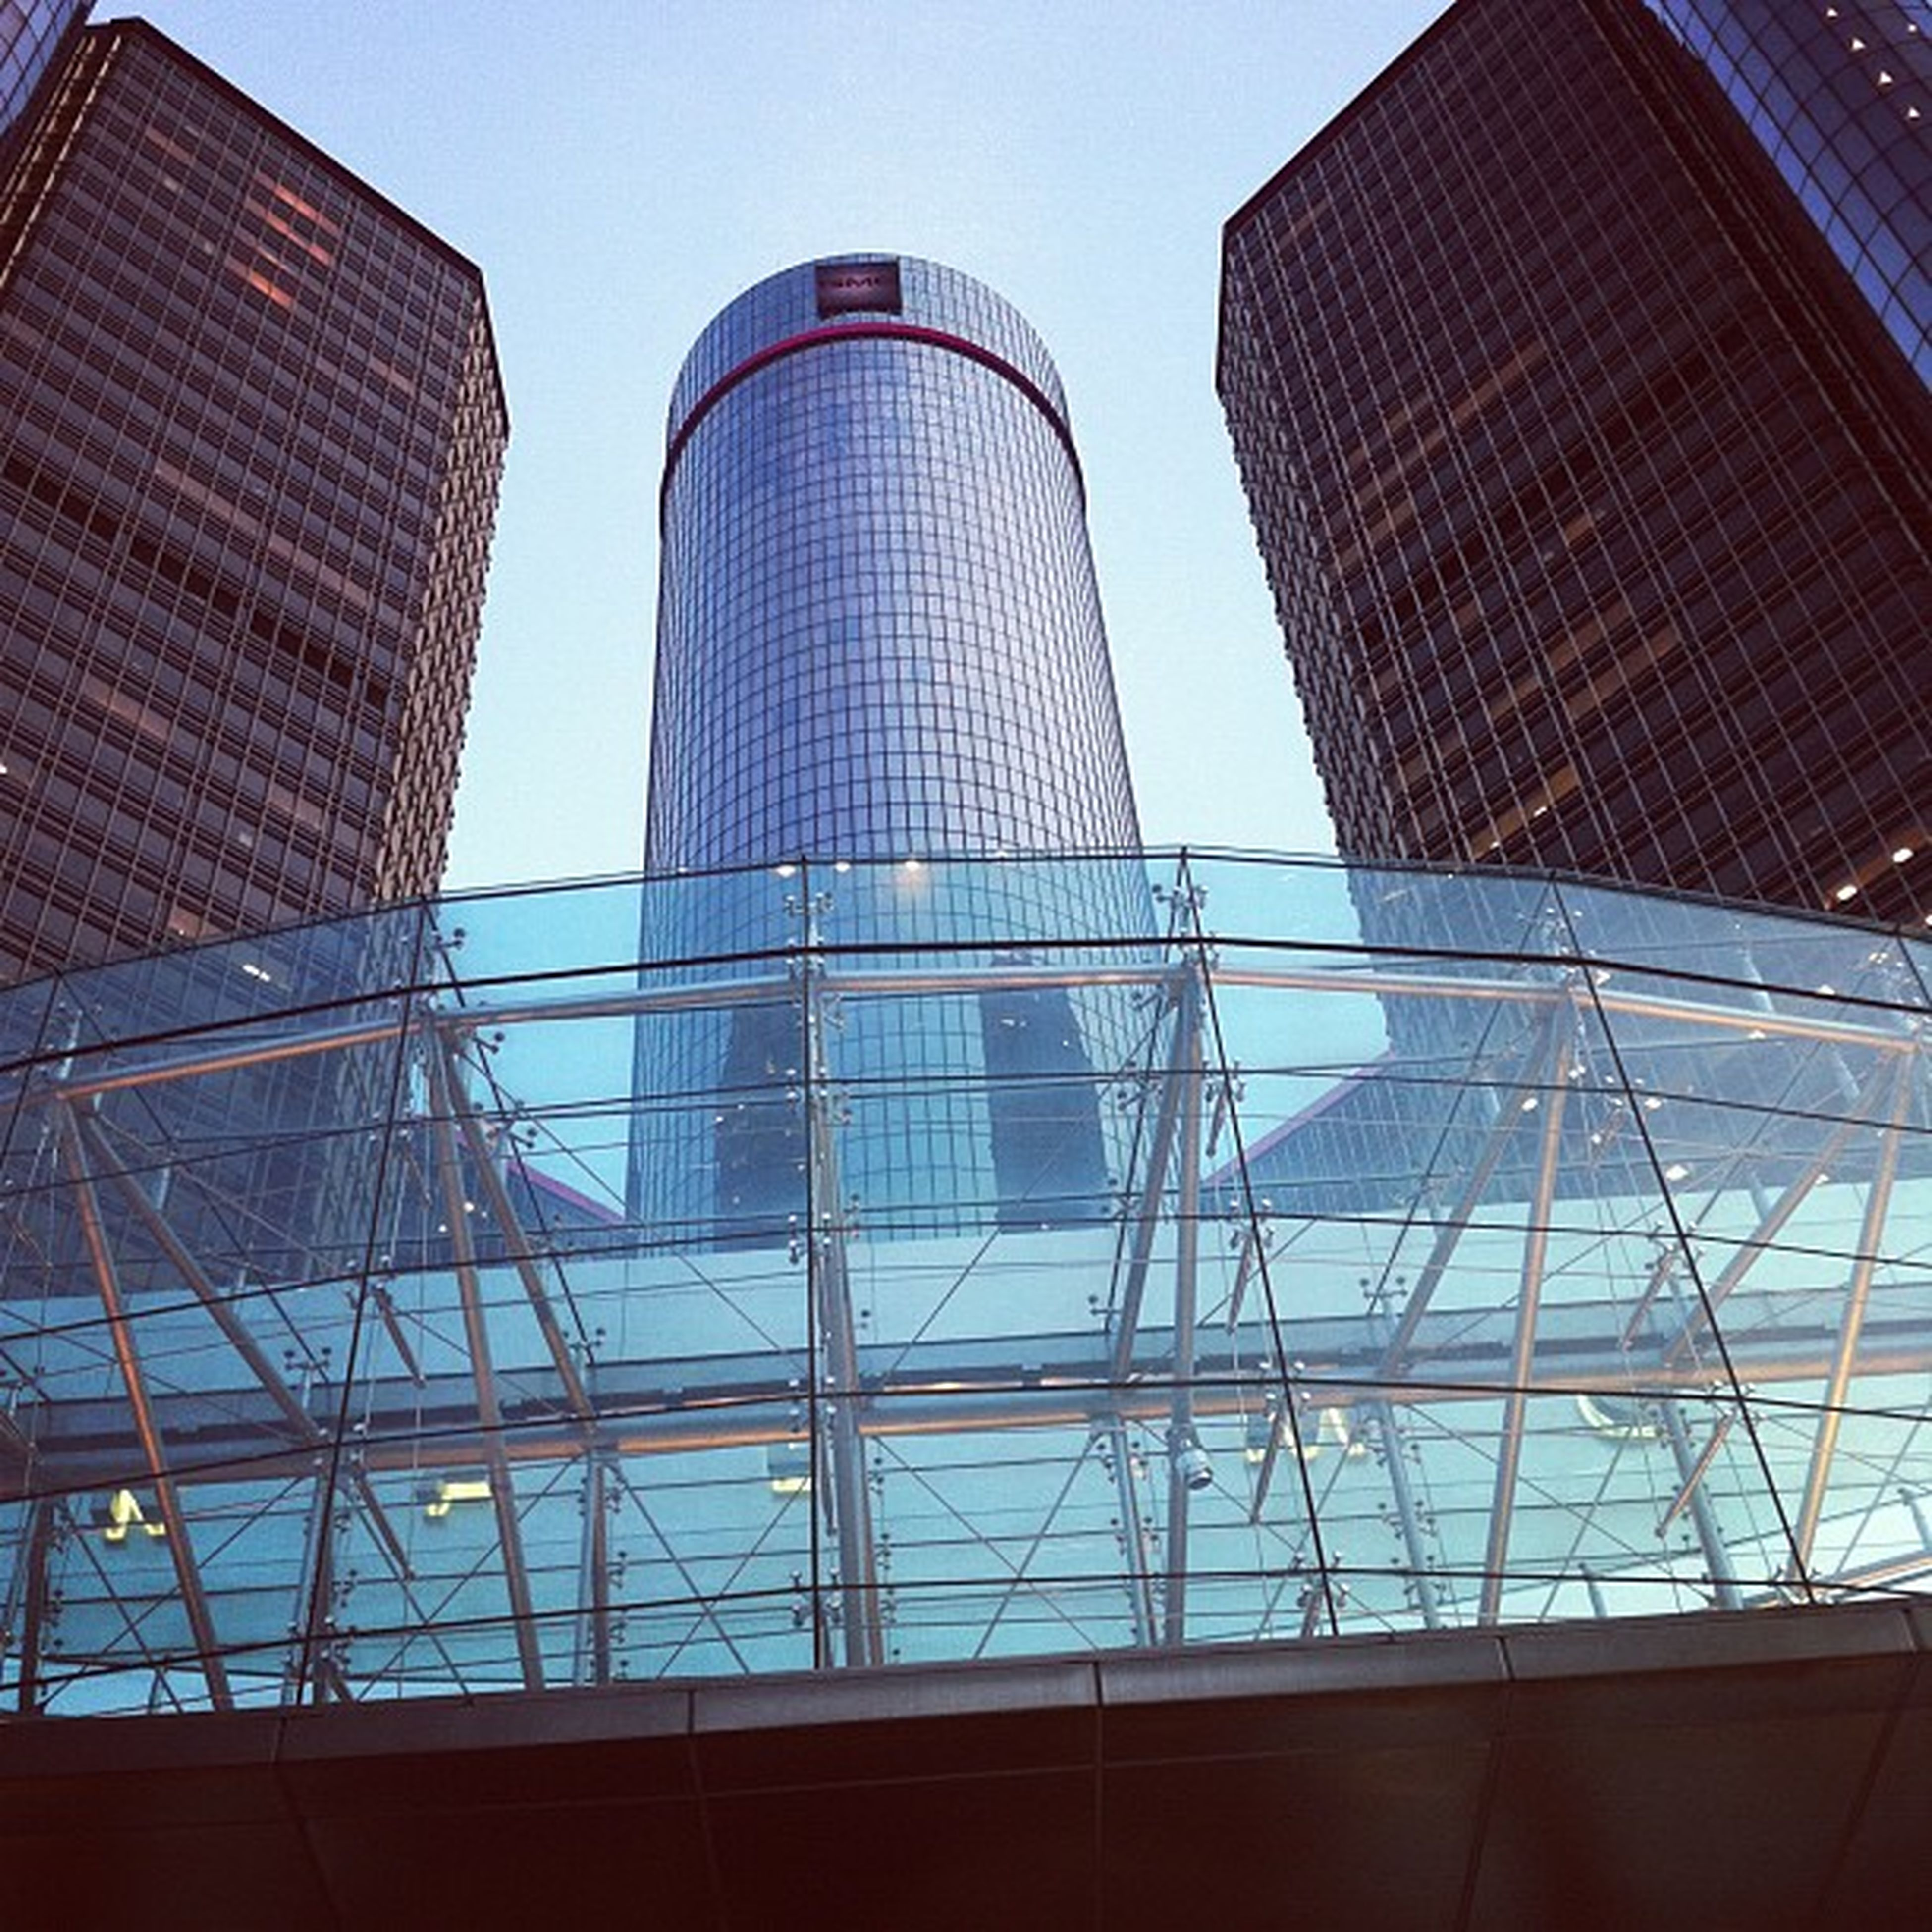 low angle view, architecture, built structure, building exterior, modern, office building, glass - material, tower, tall - high, clear sky, city, sky, building, skyscraper, pattern, day, reflection, no people, outdoors, architectural feature